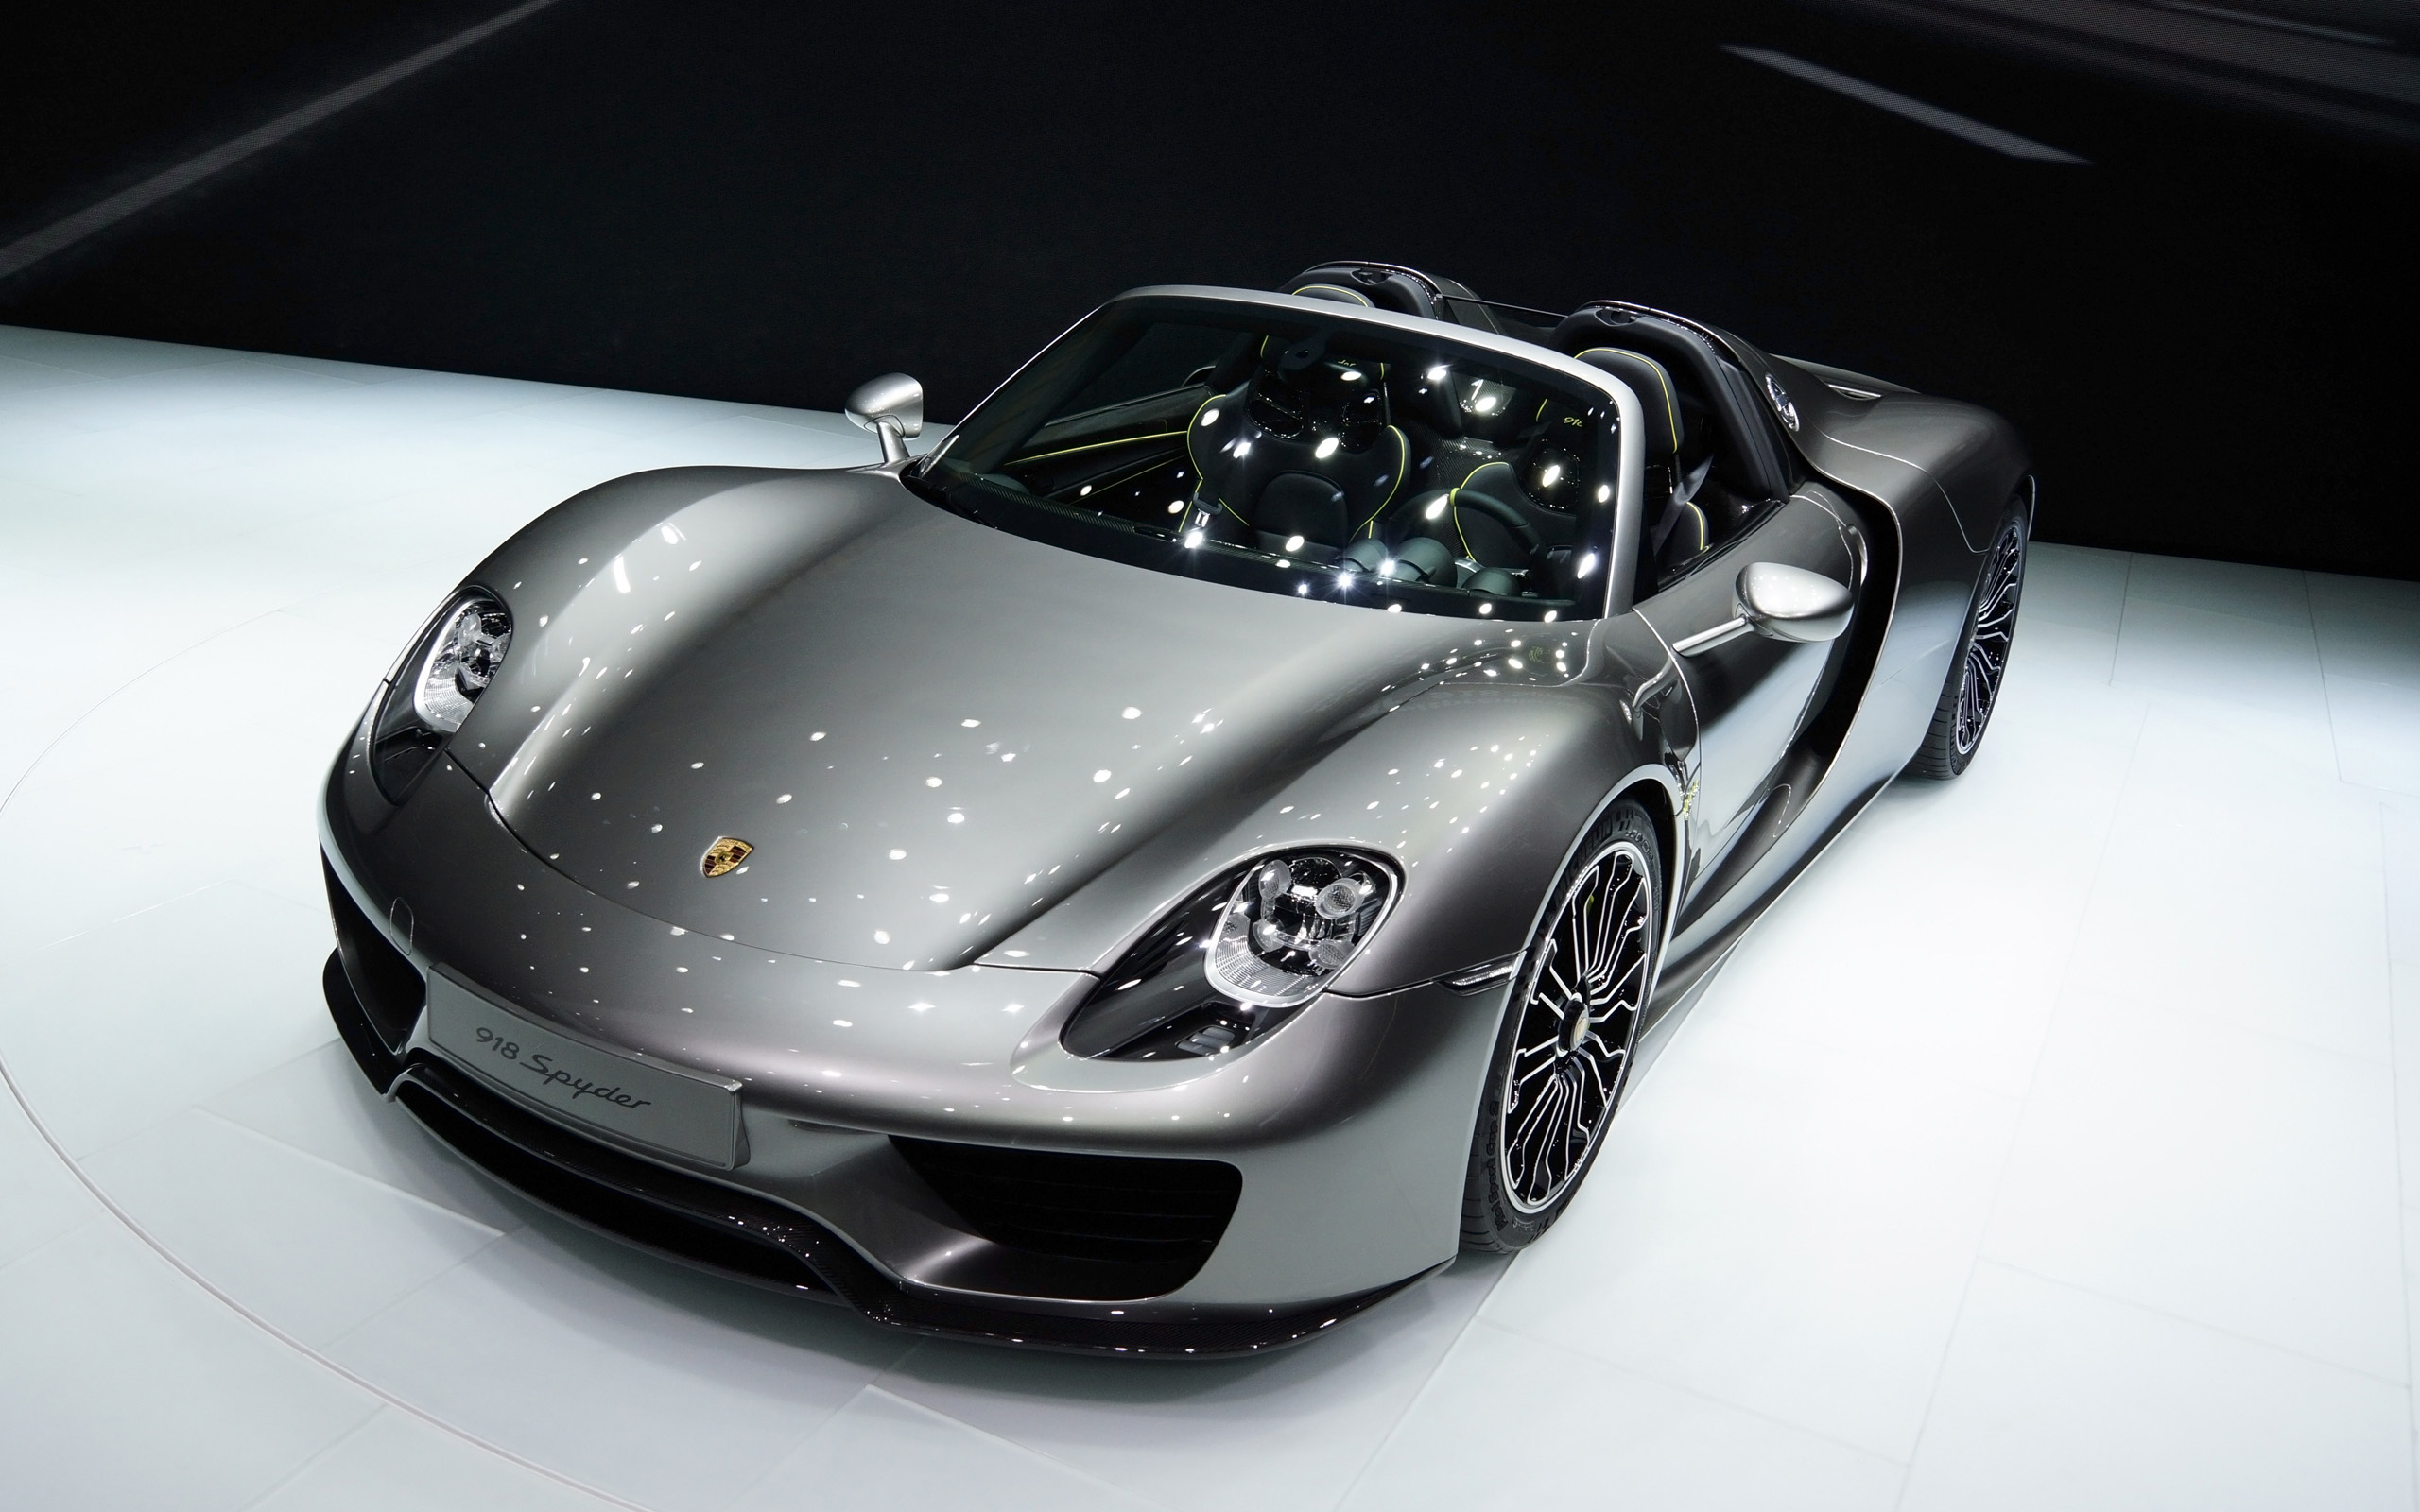 Superšportiak Porsche 918